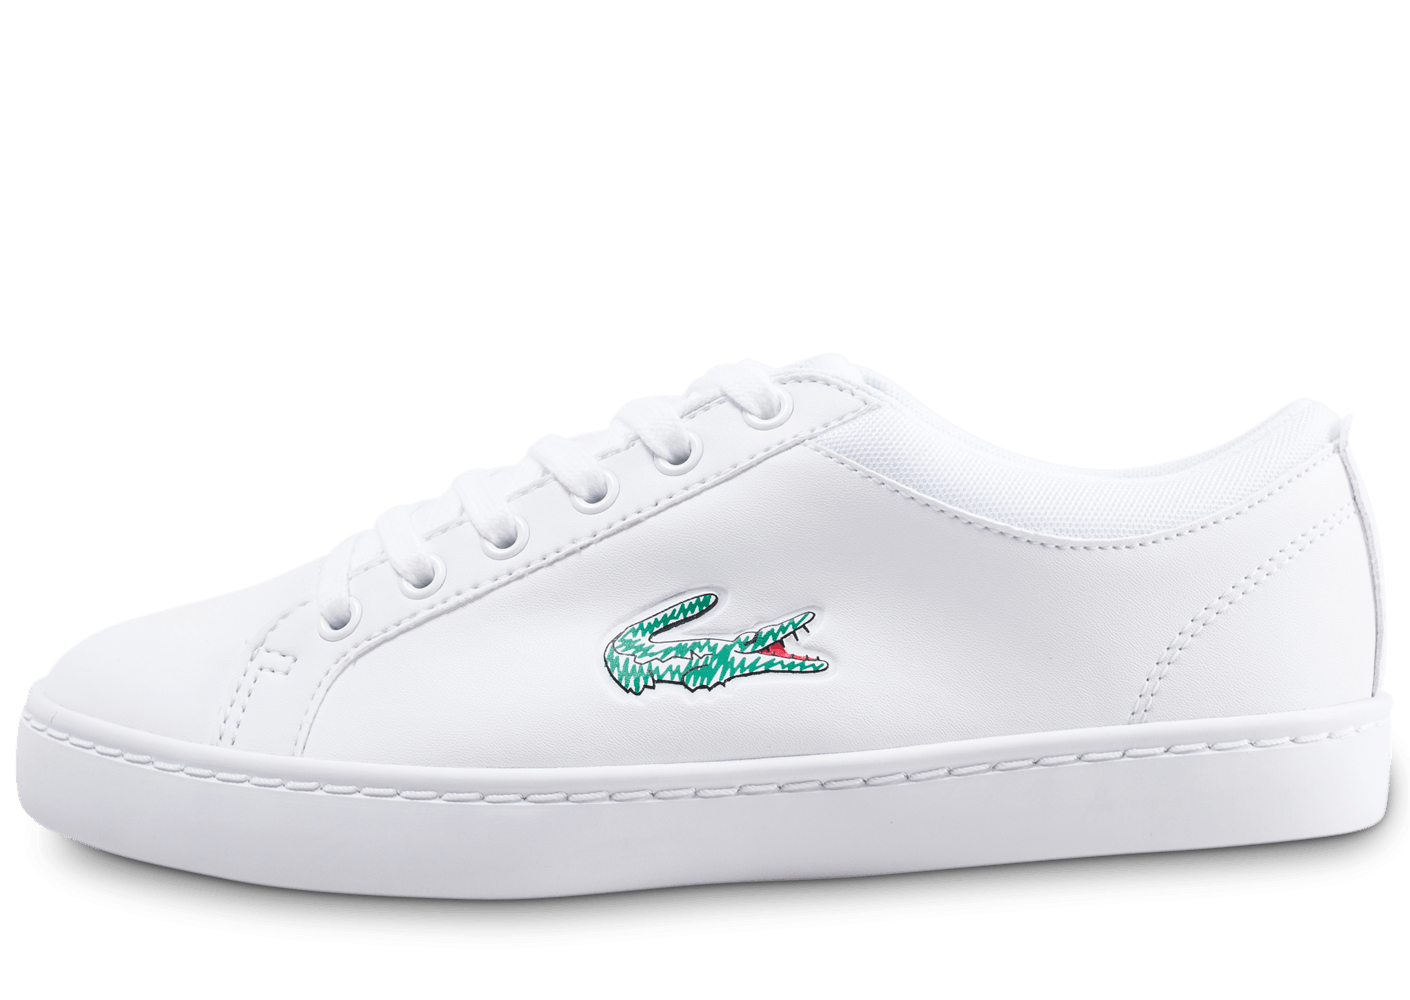 2632e4a378f Lacoste Straightset junior blanche - Chaussures Enfant - Chausport